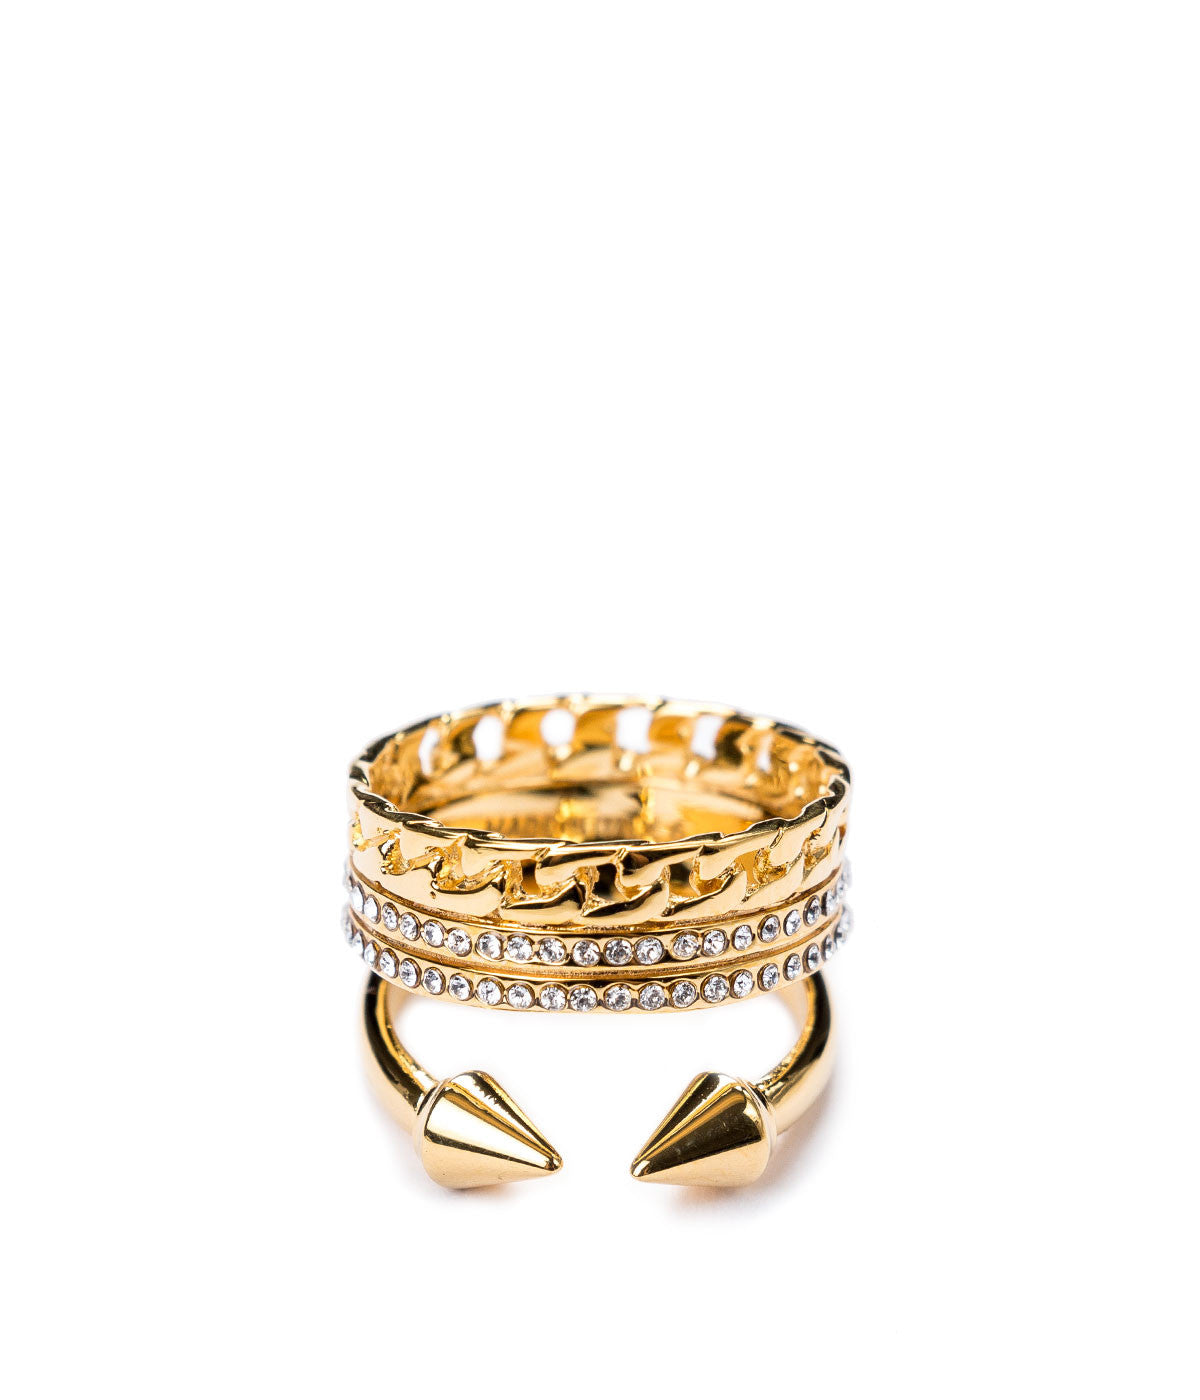 Gold Three Band Two Spikes Ring